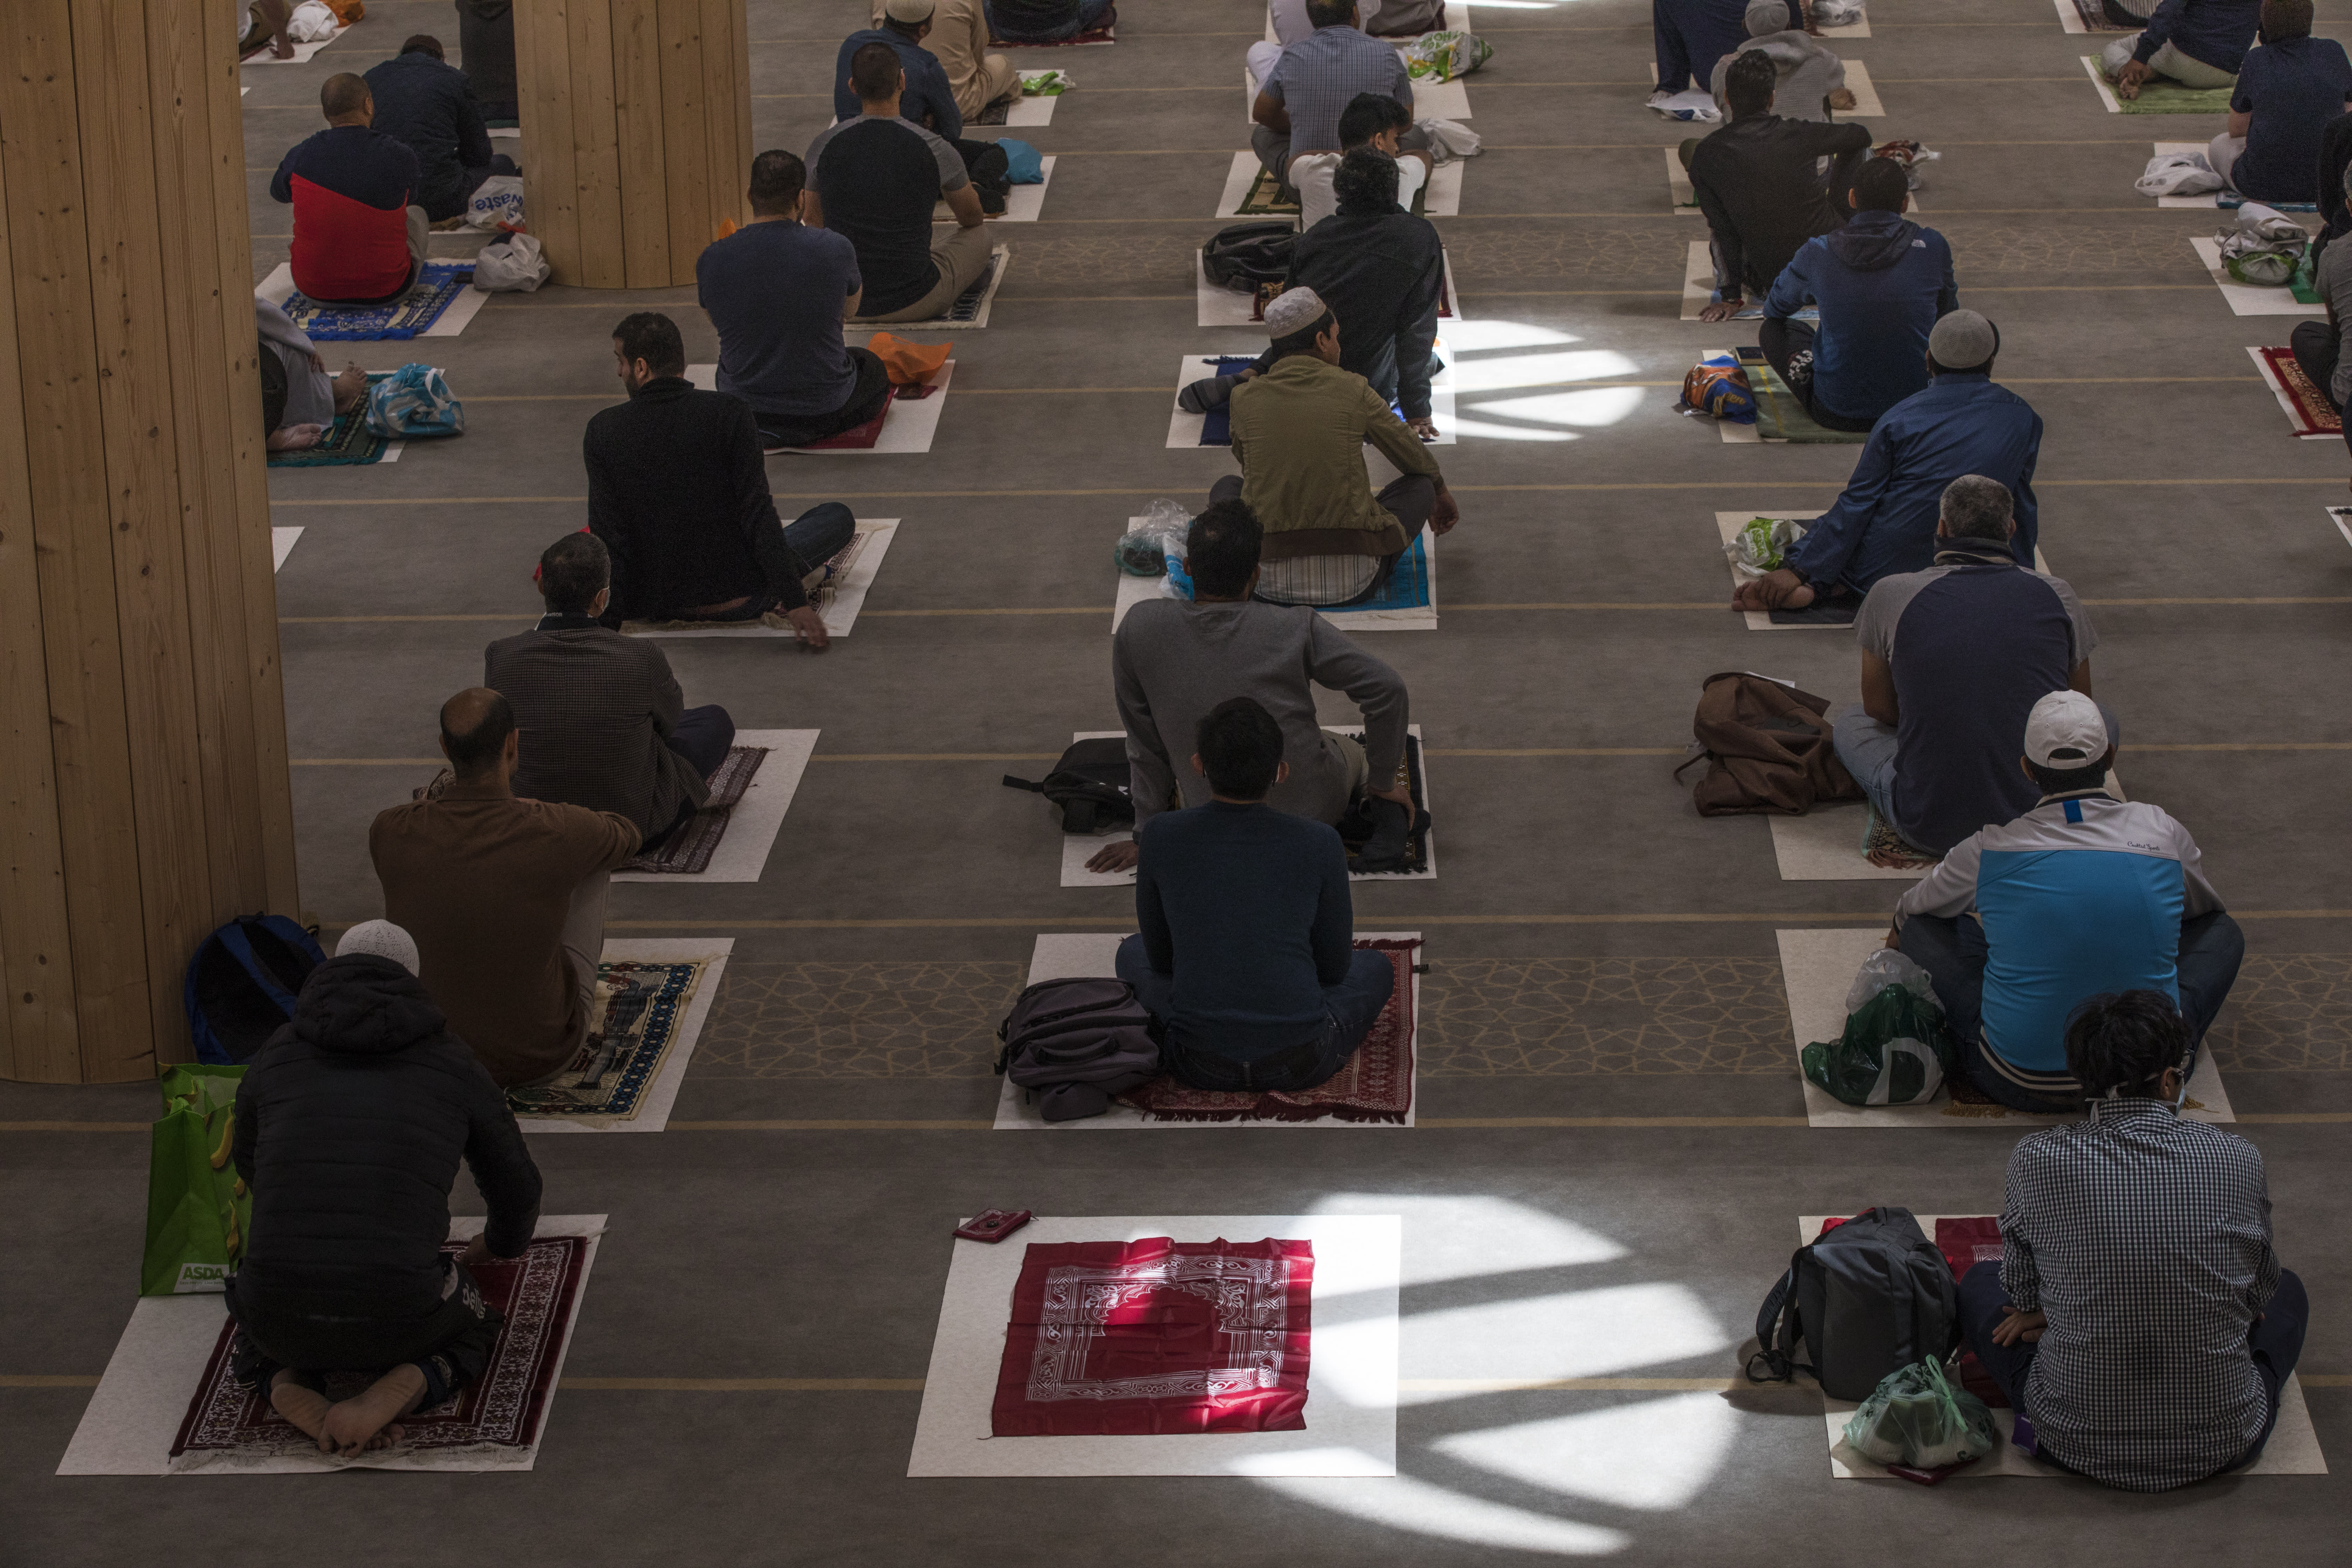 Worshippers at the Cambridge Central Mosque in Cambridge, England, attend the first Friday communal prayers since lockdown on Friday, July 10, 2020. Mats are now spaced apart during communal prayers, and worshippers are asked to bring their own. Attendees' names and phone numbers were collected for possible contact tracing purposes. (AP Photo/Elizabeth Dalziel)